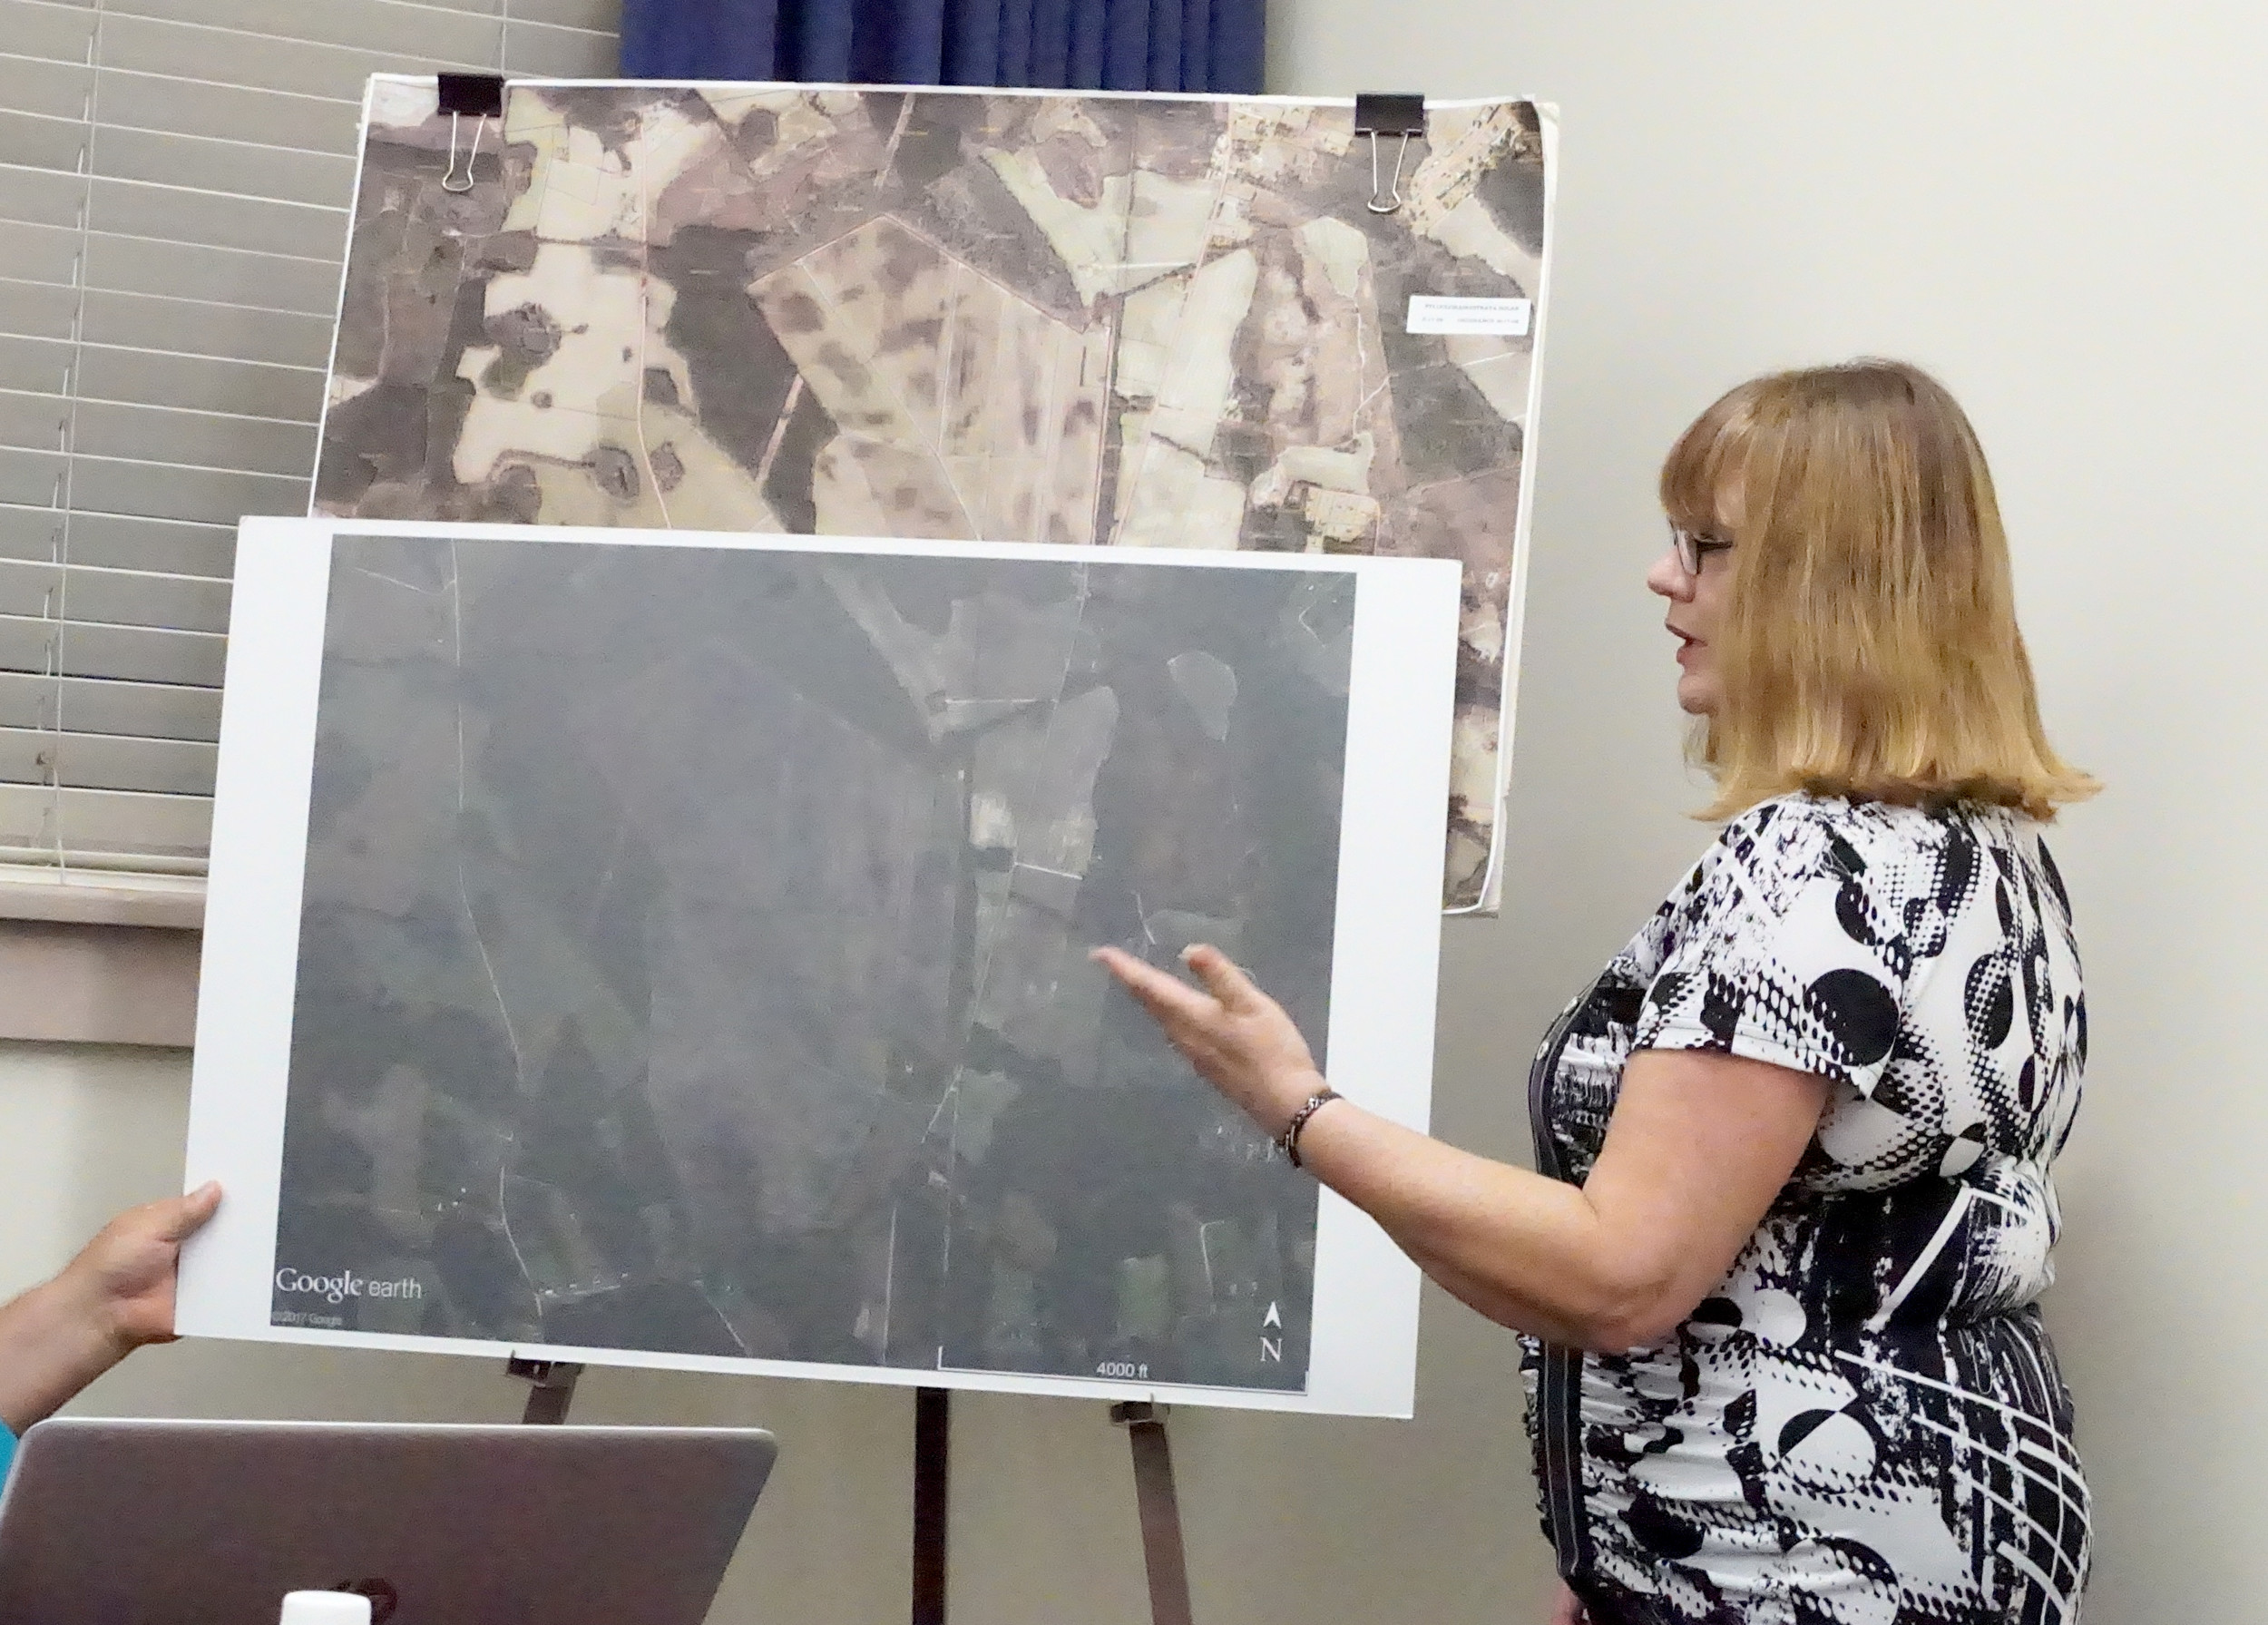 Clarendon County Planning Commission Director Maria Rose shows a map of a proposed solar farm near Paxville at Monday's Clarendon County Council meeting in Summerton. Third reading of an ordinance to change the zoning of a parcel of land in Paxville to allow for a solar farm was approved after the hearing.